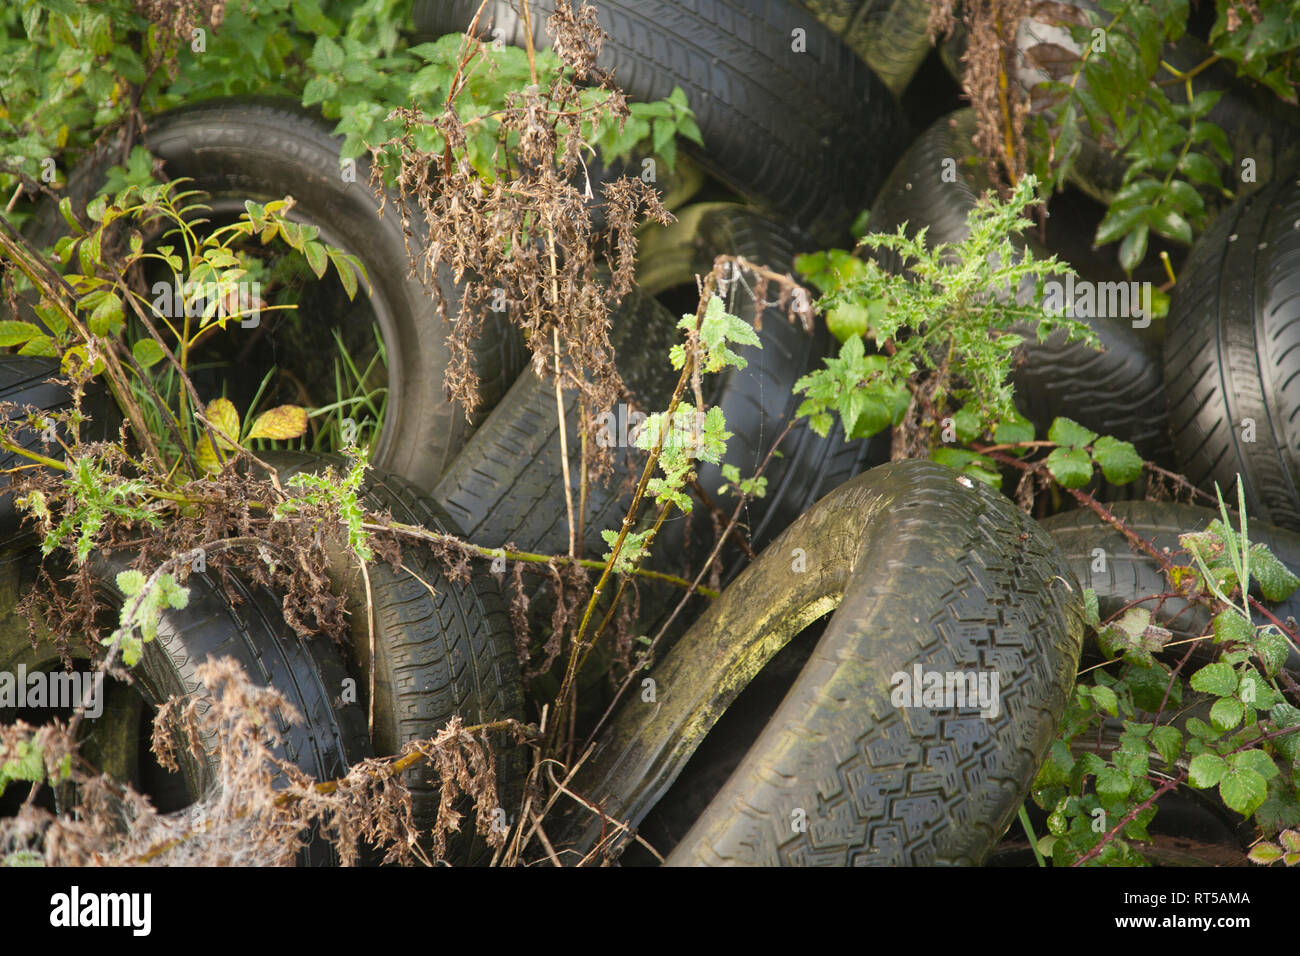 Old Car tyres dumped in hedgerow in the countryside in Worcestershire, England - Stock Image